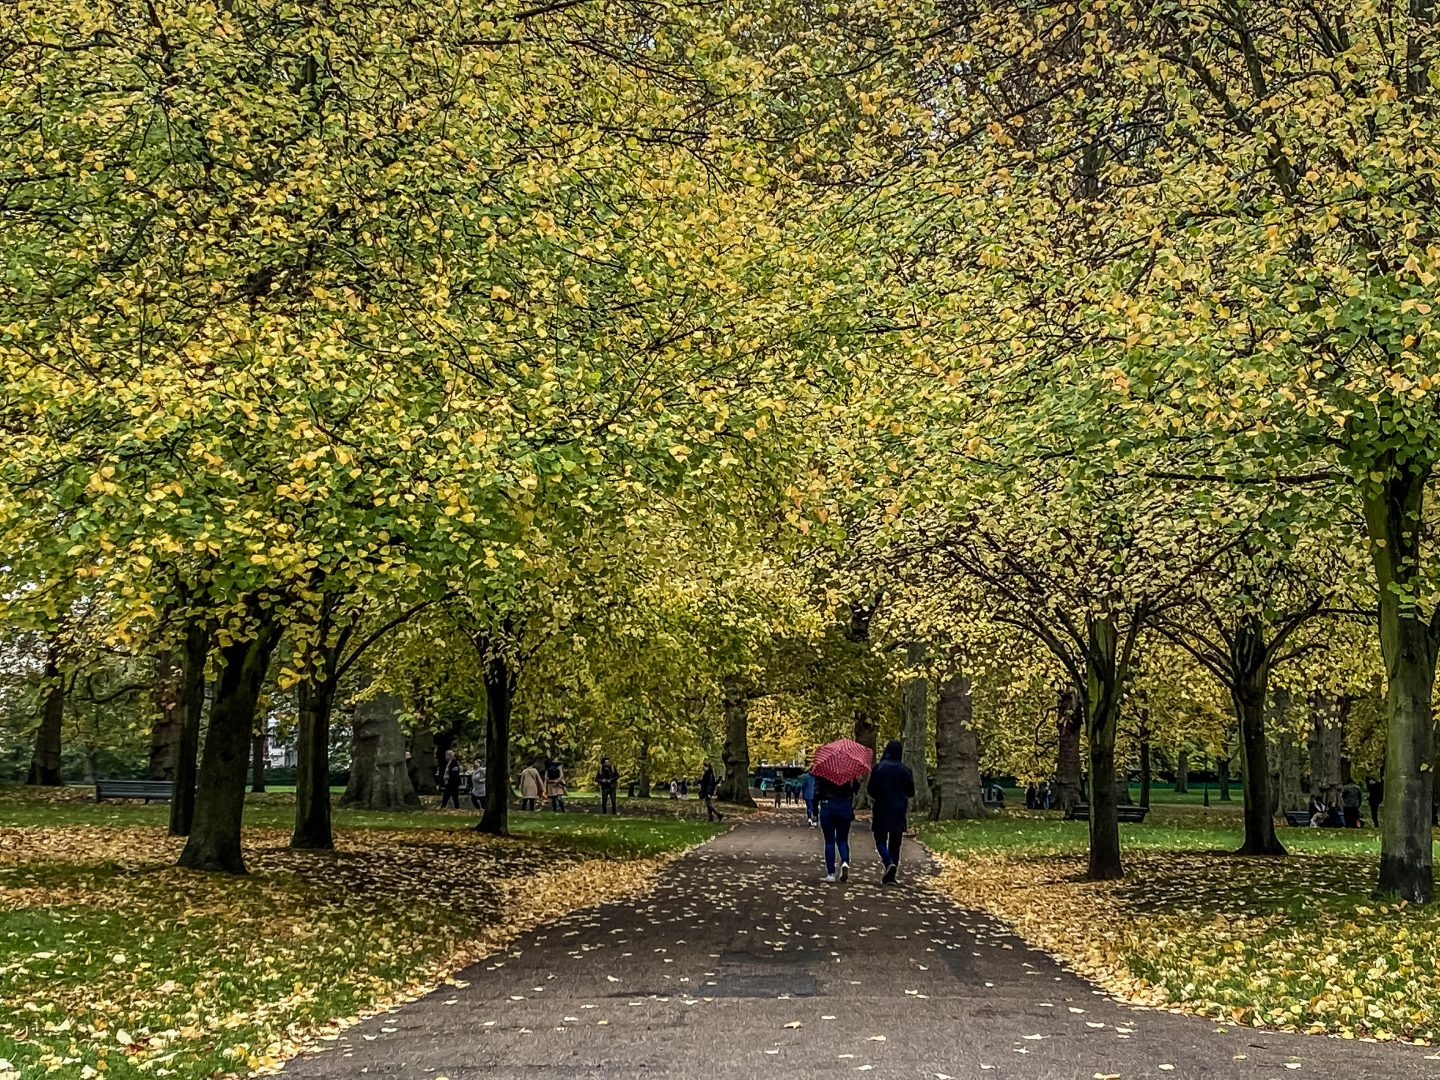 Taken over by fall, London's Green Park